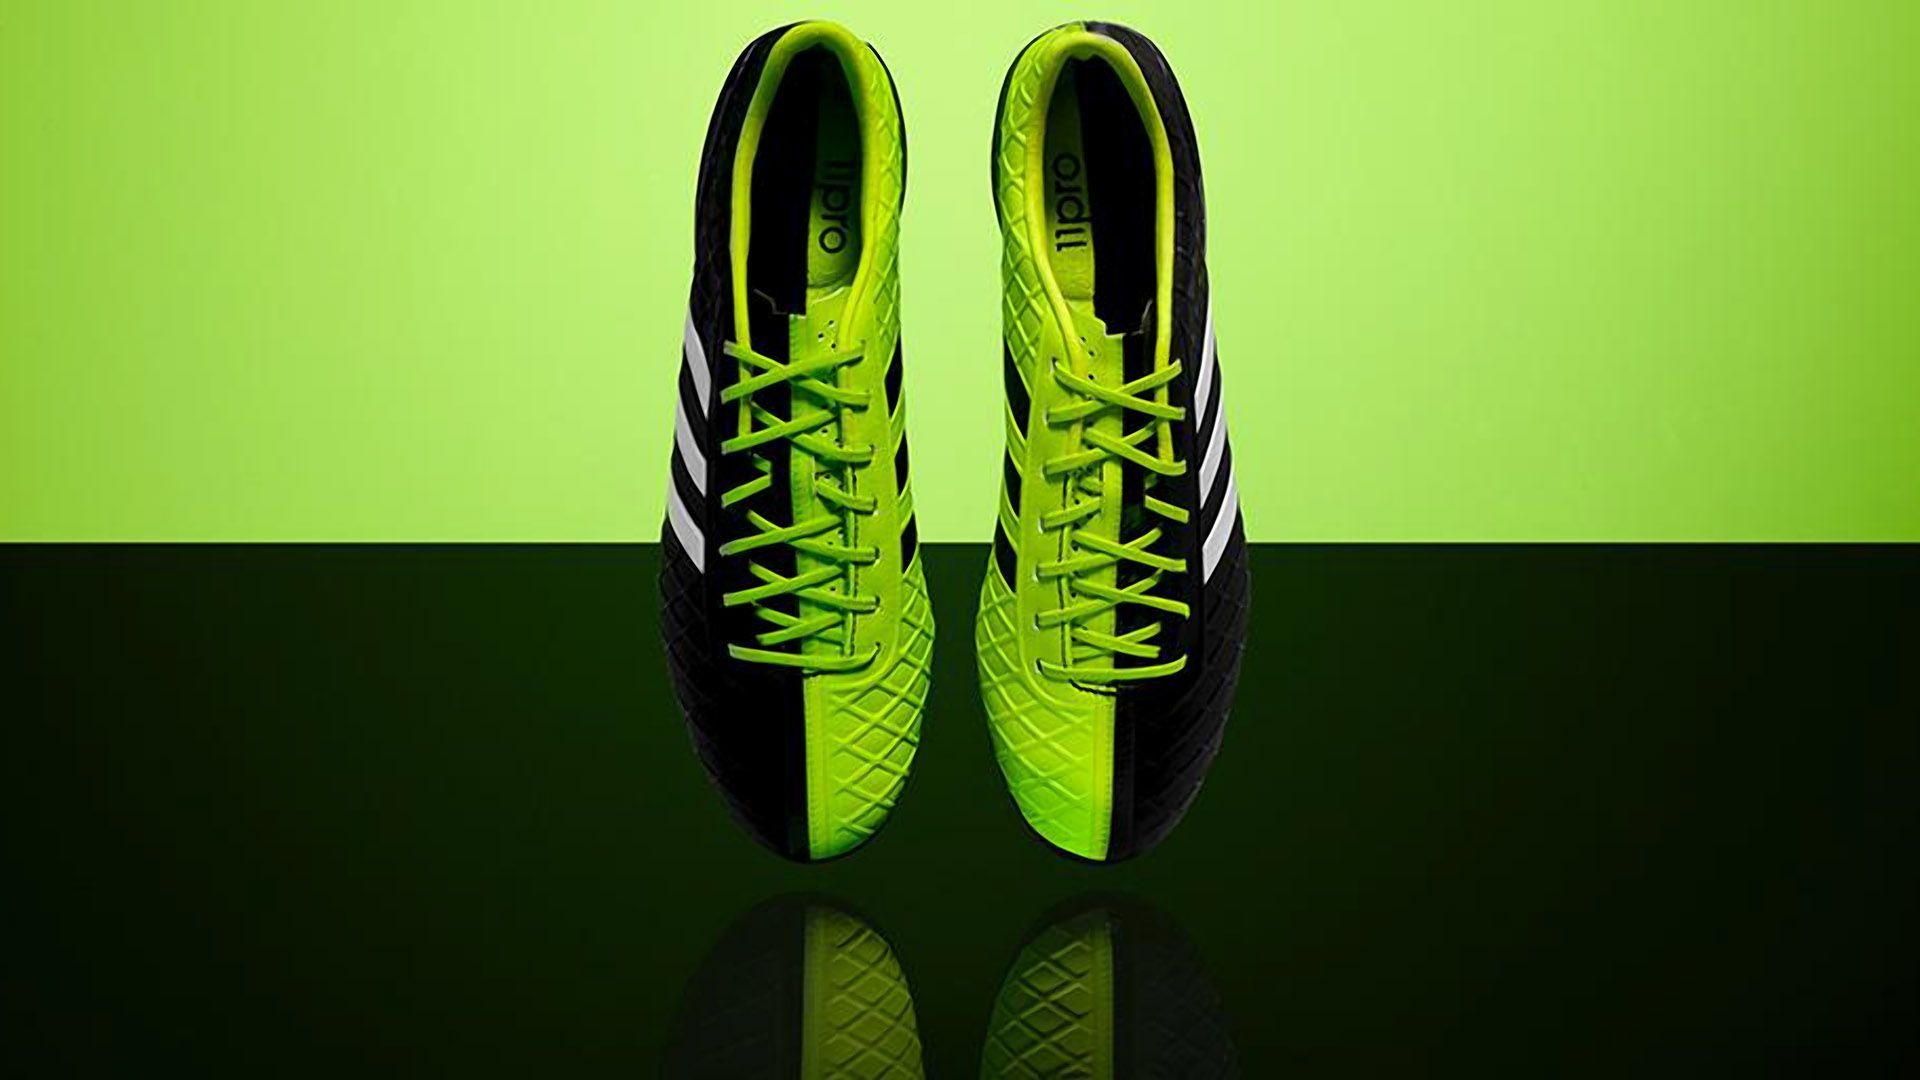 Adidas Adipure 11pro Super Light Football Boots Wallpaper Free Football Boots Adipure 2015 Boots